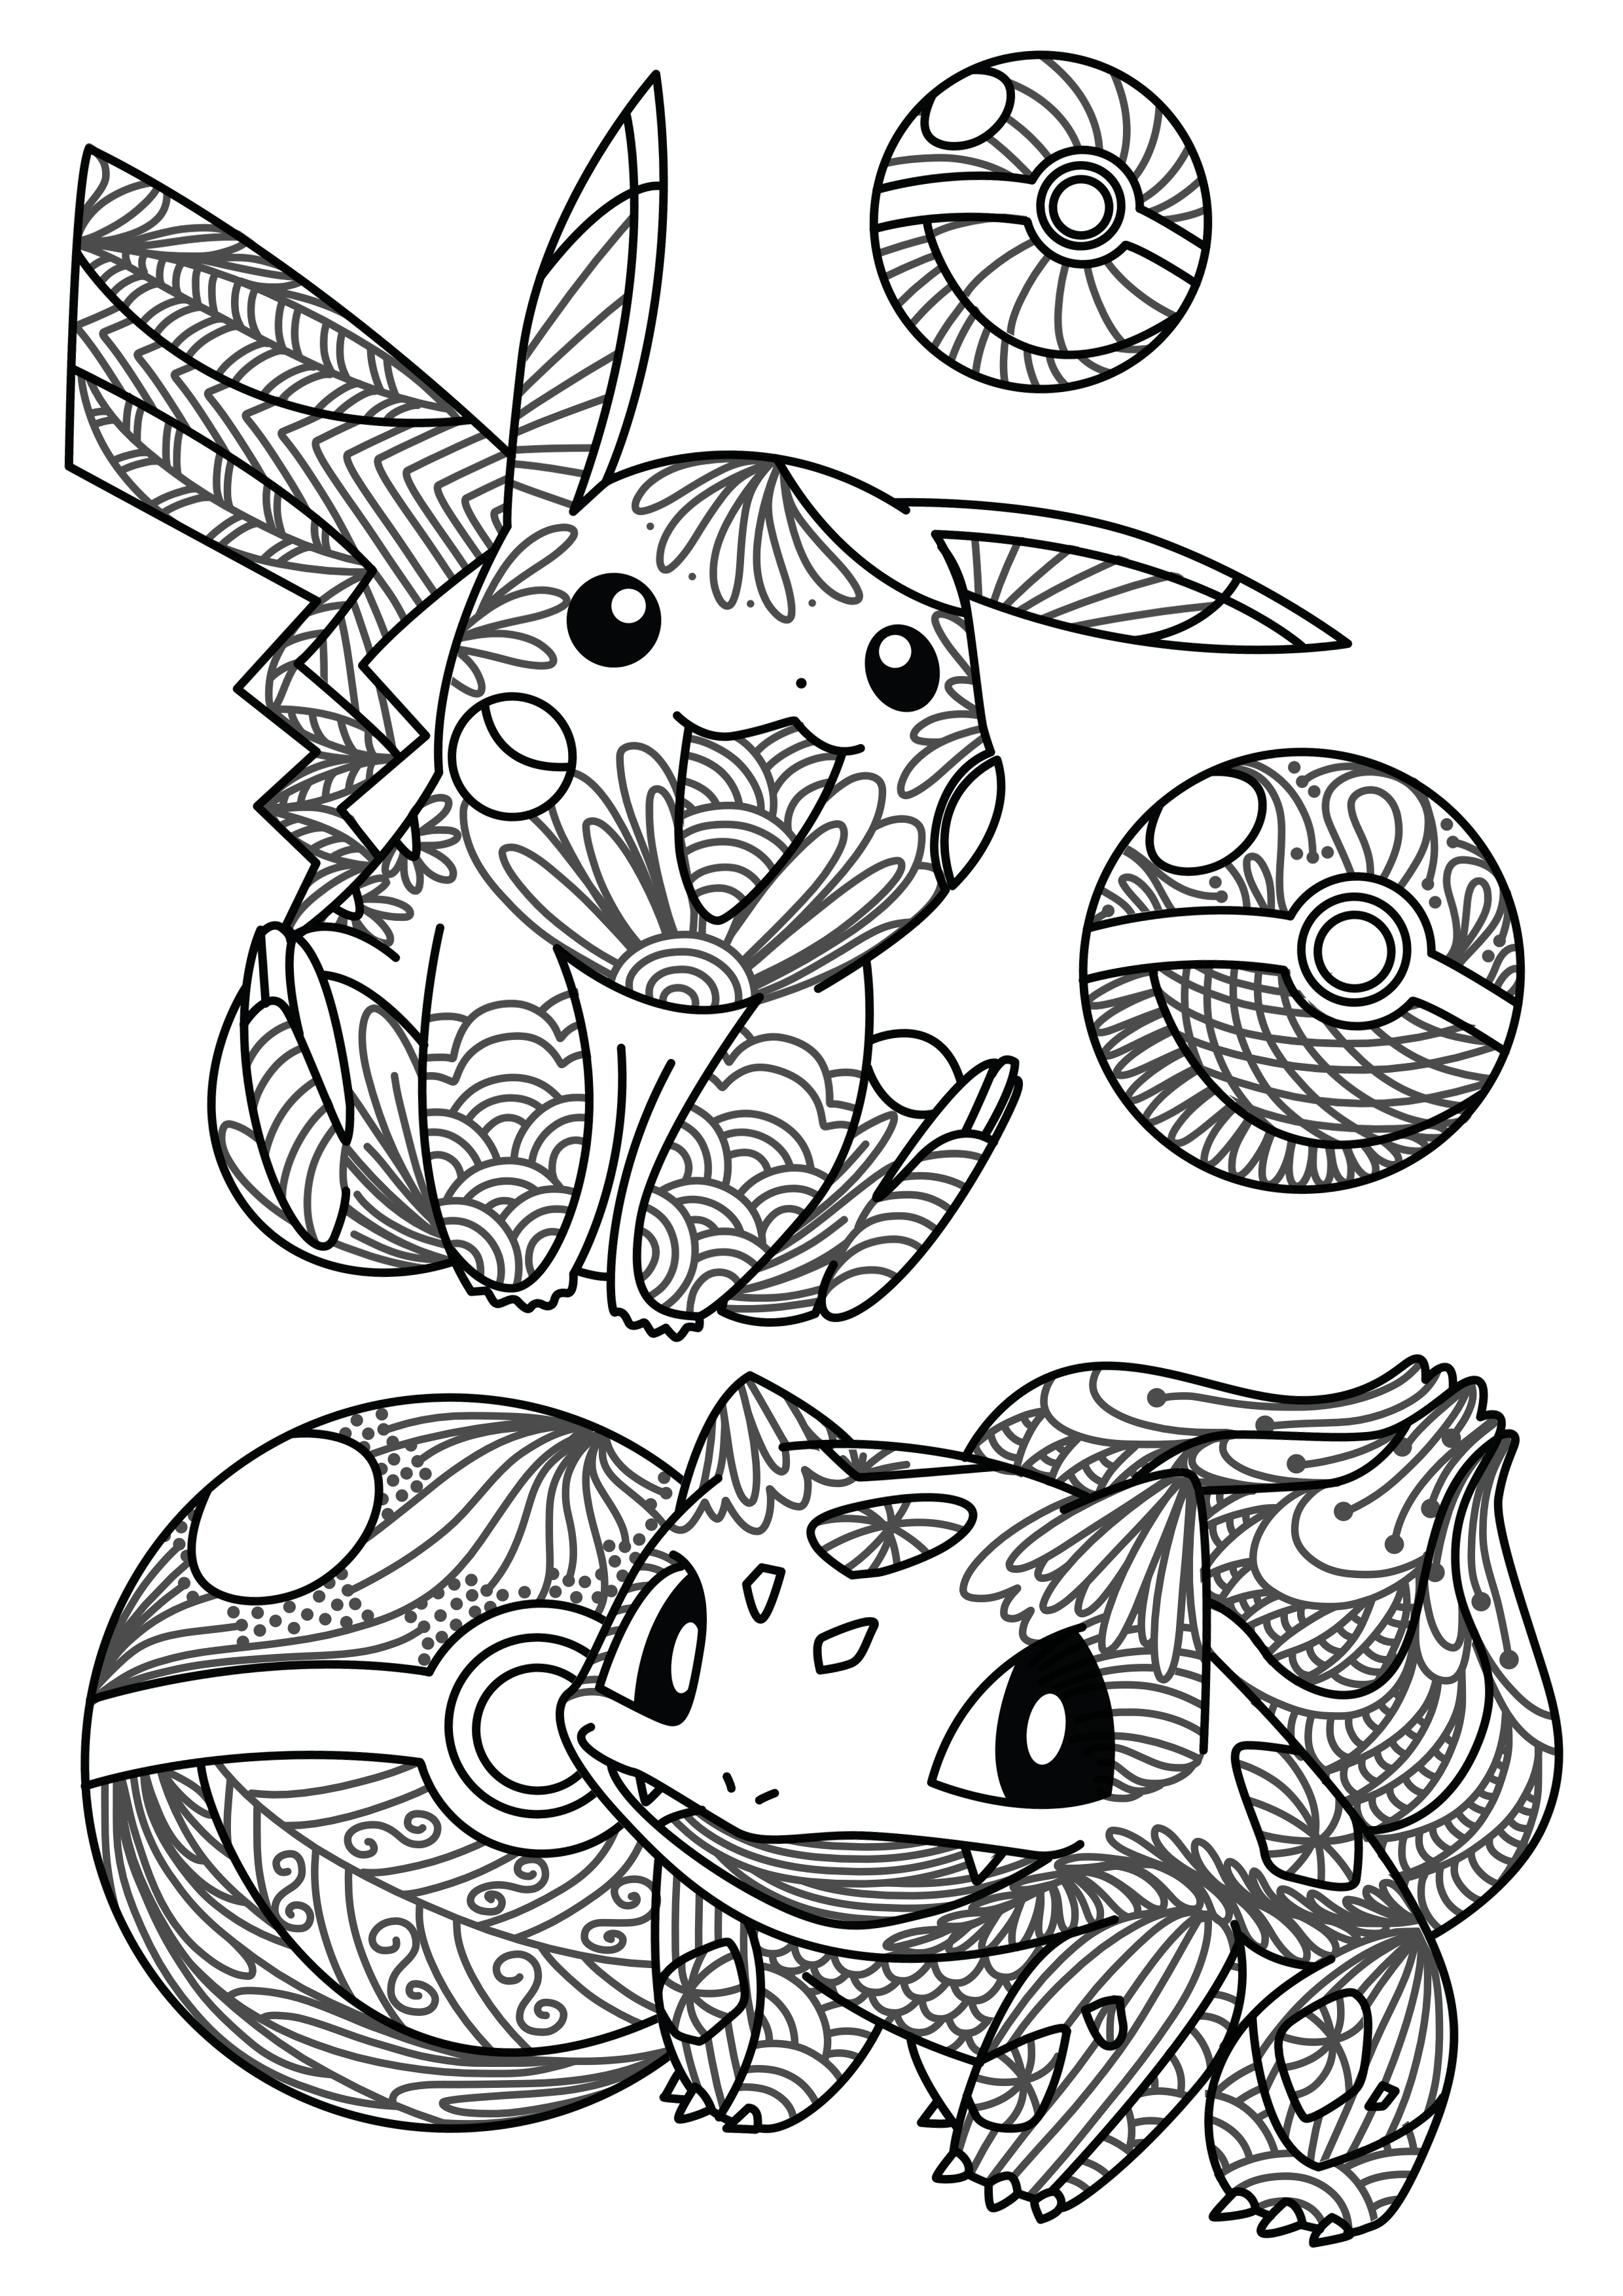 Christmas Coloring Pages On Pinterest With Modern Pokemon Decoration Ideas Newyork Rp